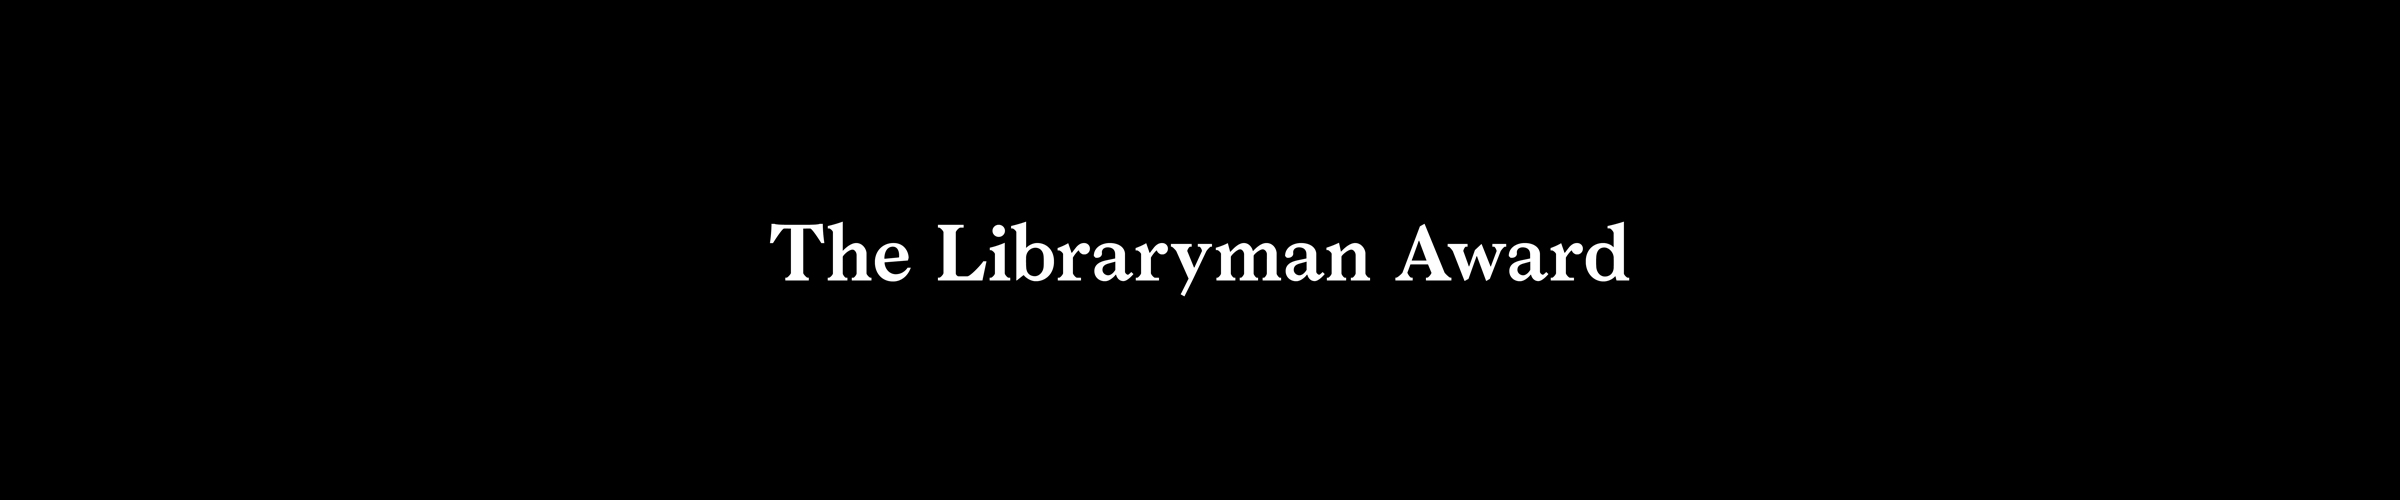 libraryman-award.jpg